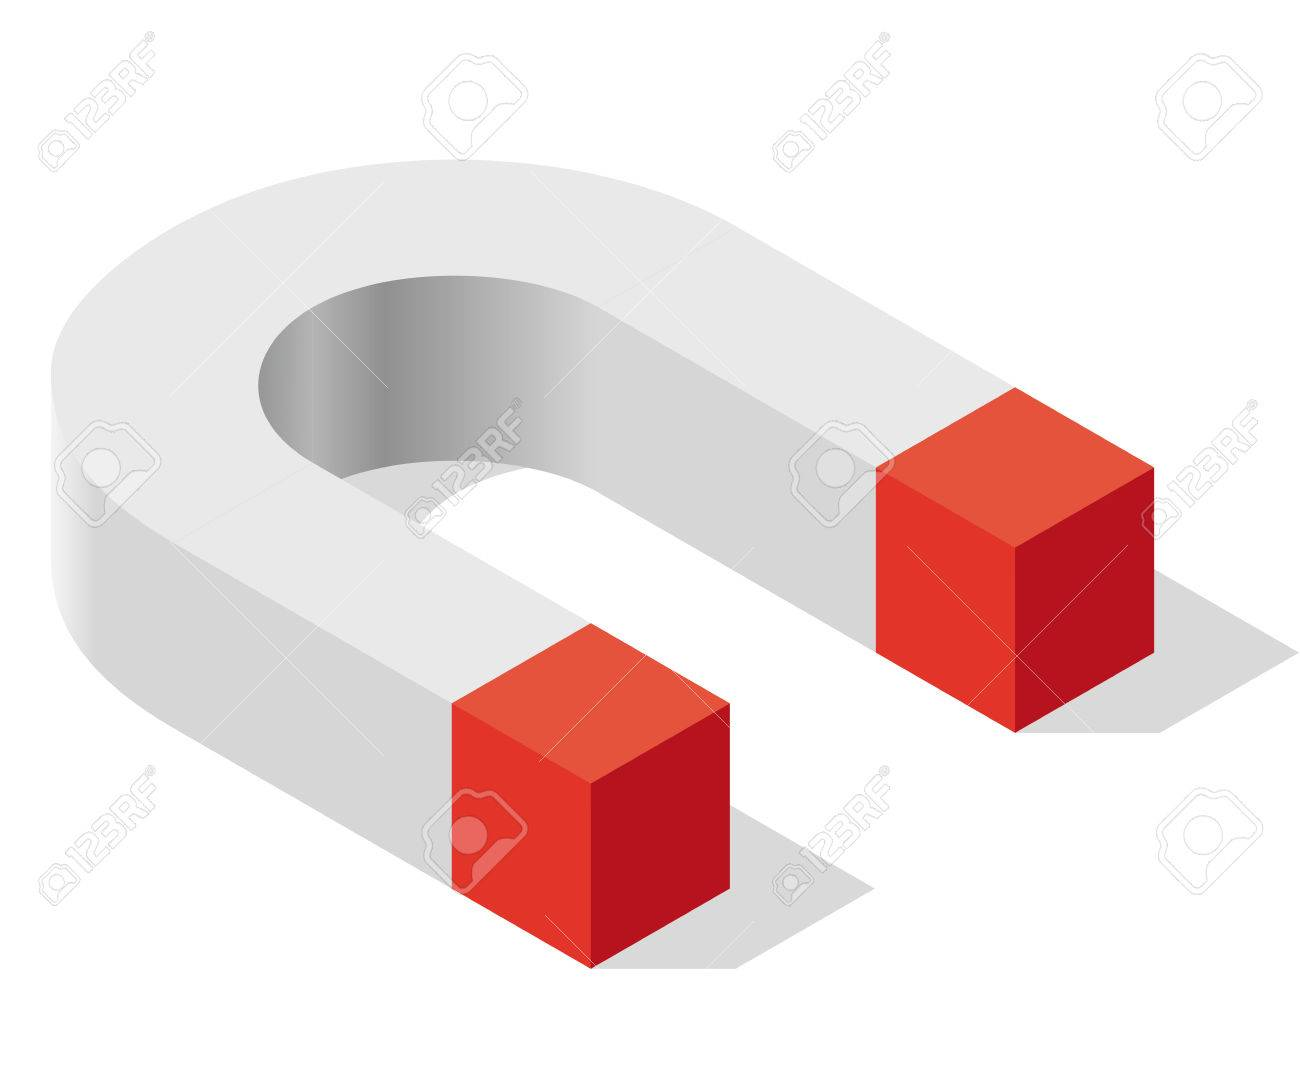 Magnet Symbol, Isometric Perspective. Pure Shadowed Shape In ...